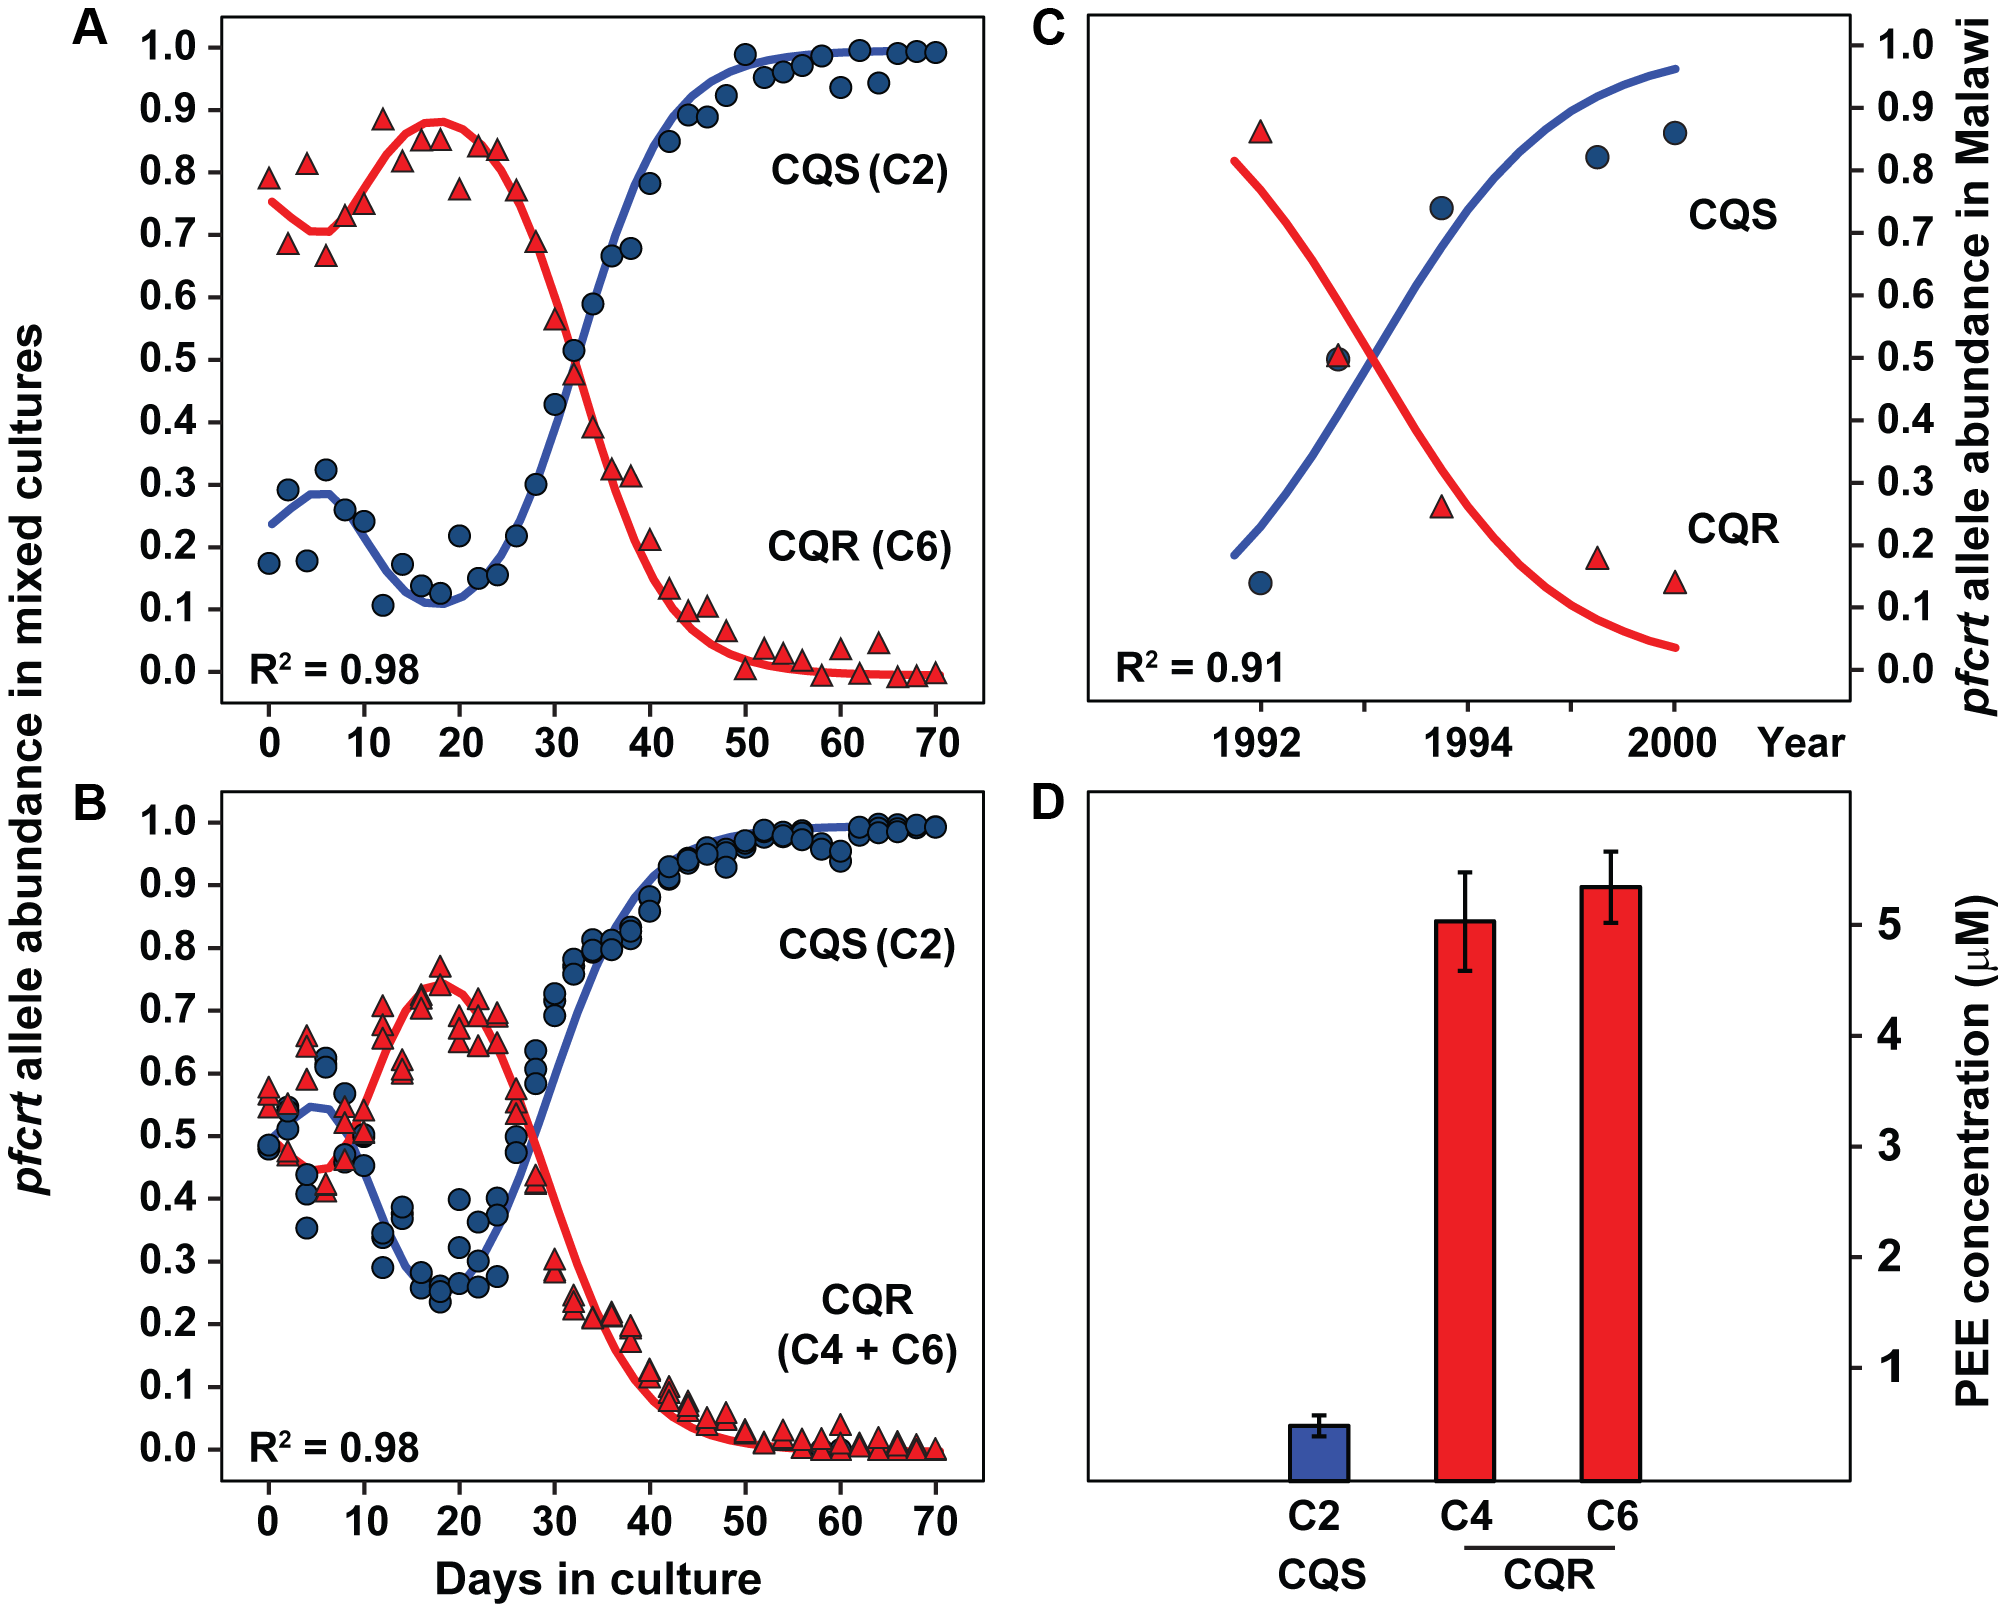 Chloroquine sensitive alleles outcompete resistant alleles <i>in vitro</i> and in endemic populations.